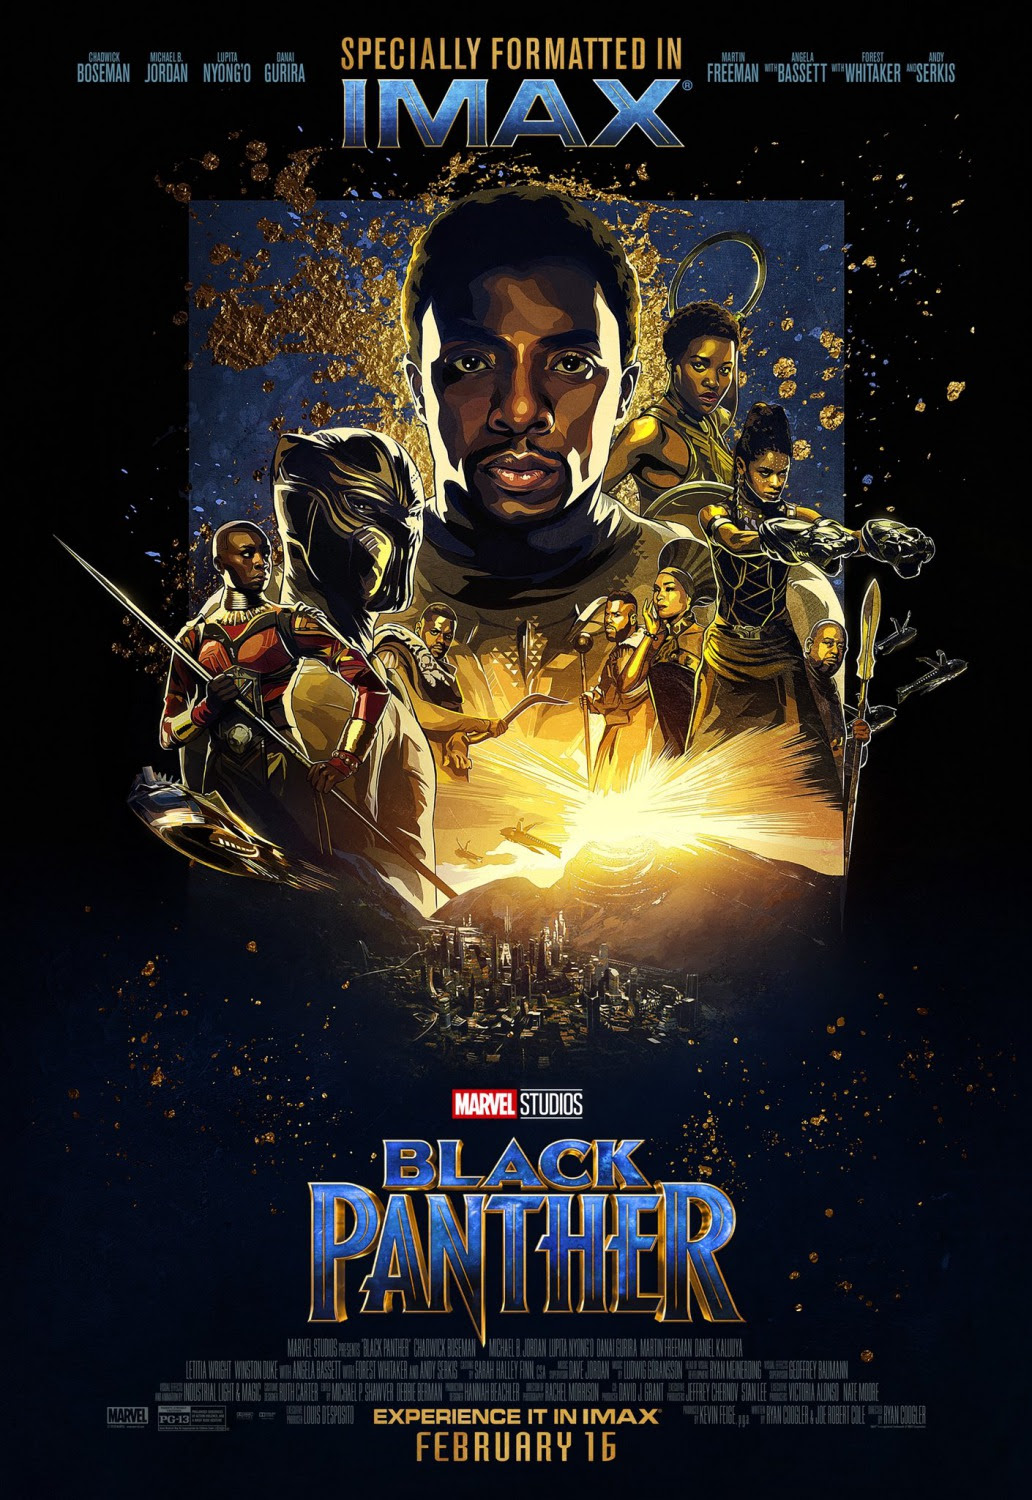 Extra Large Movie Poster Image for Black Panther (#21 of 23)